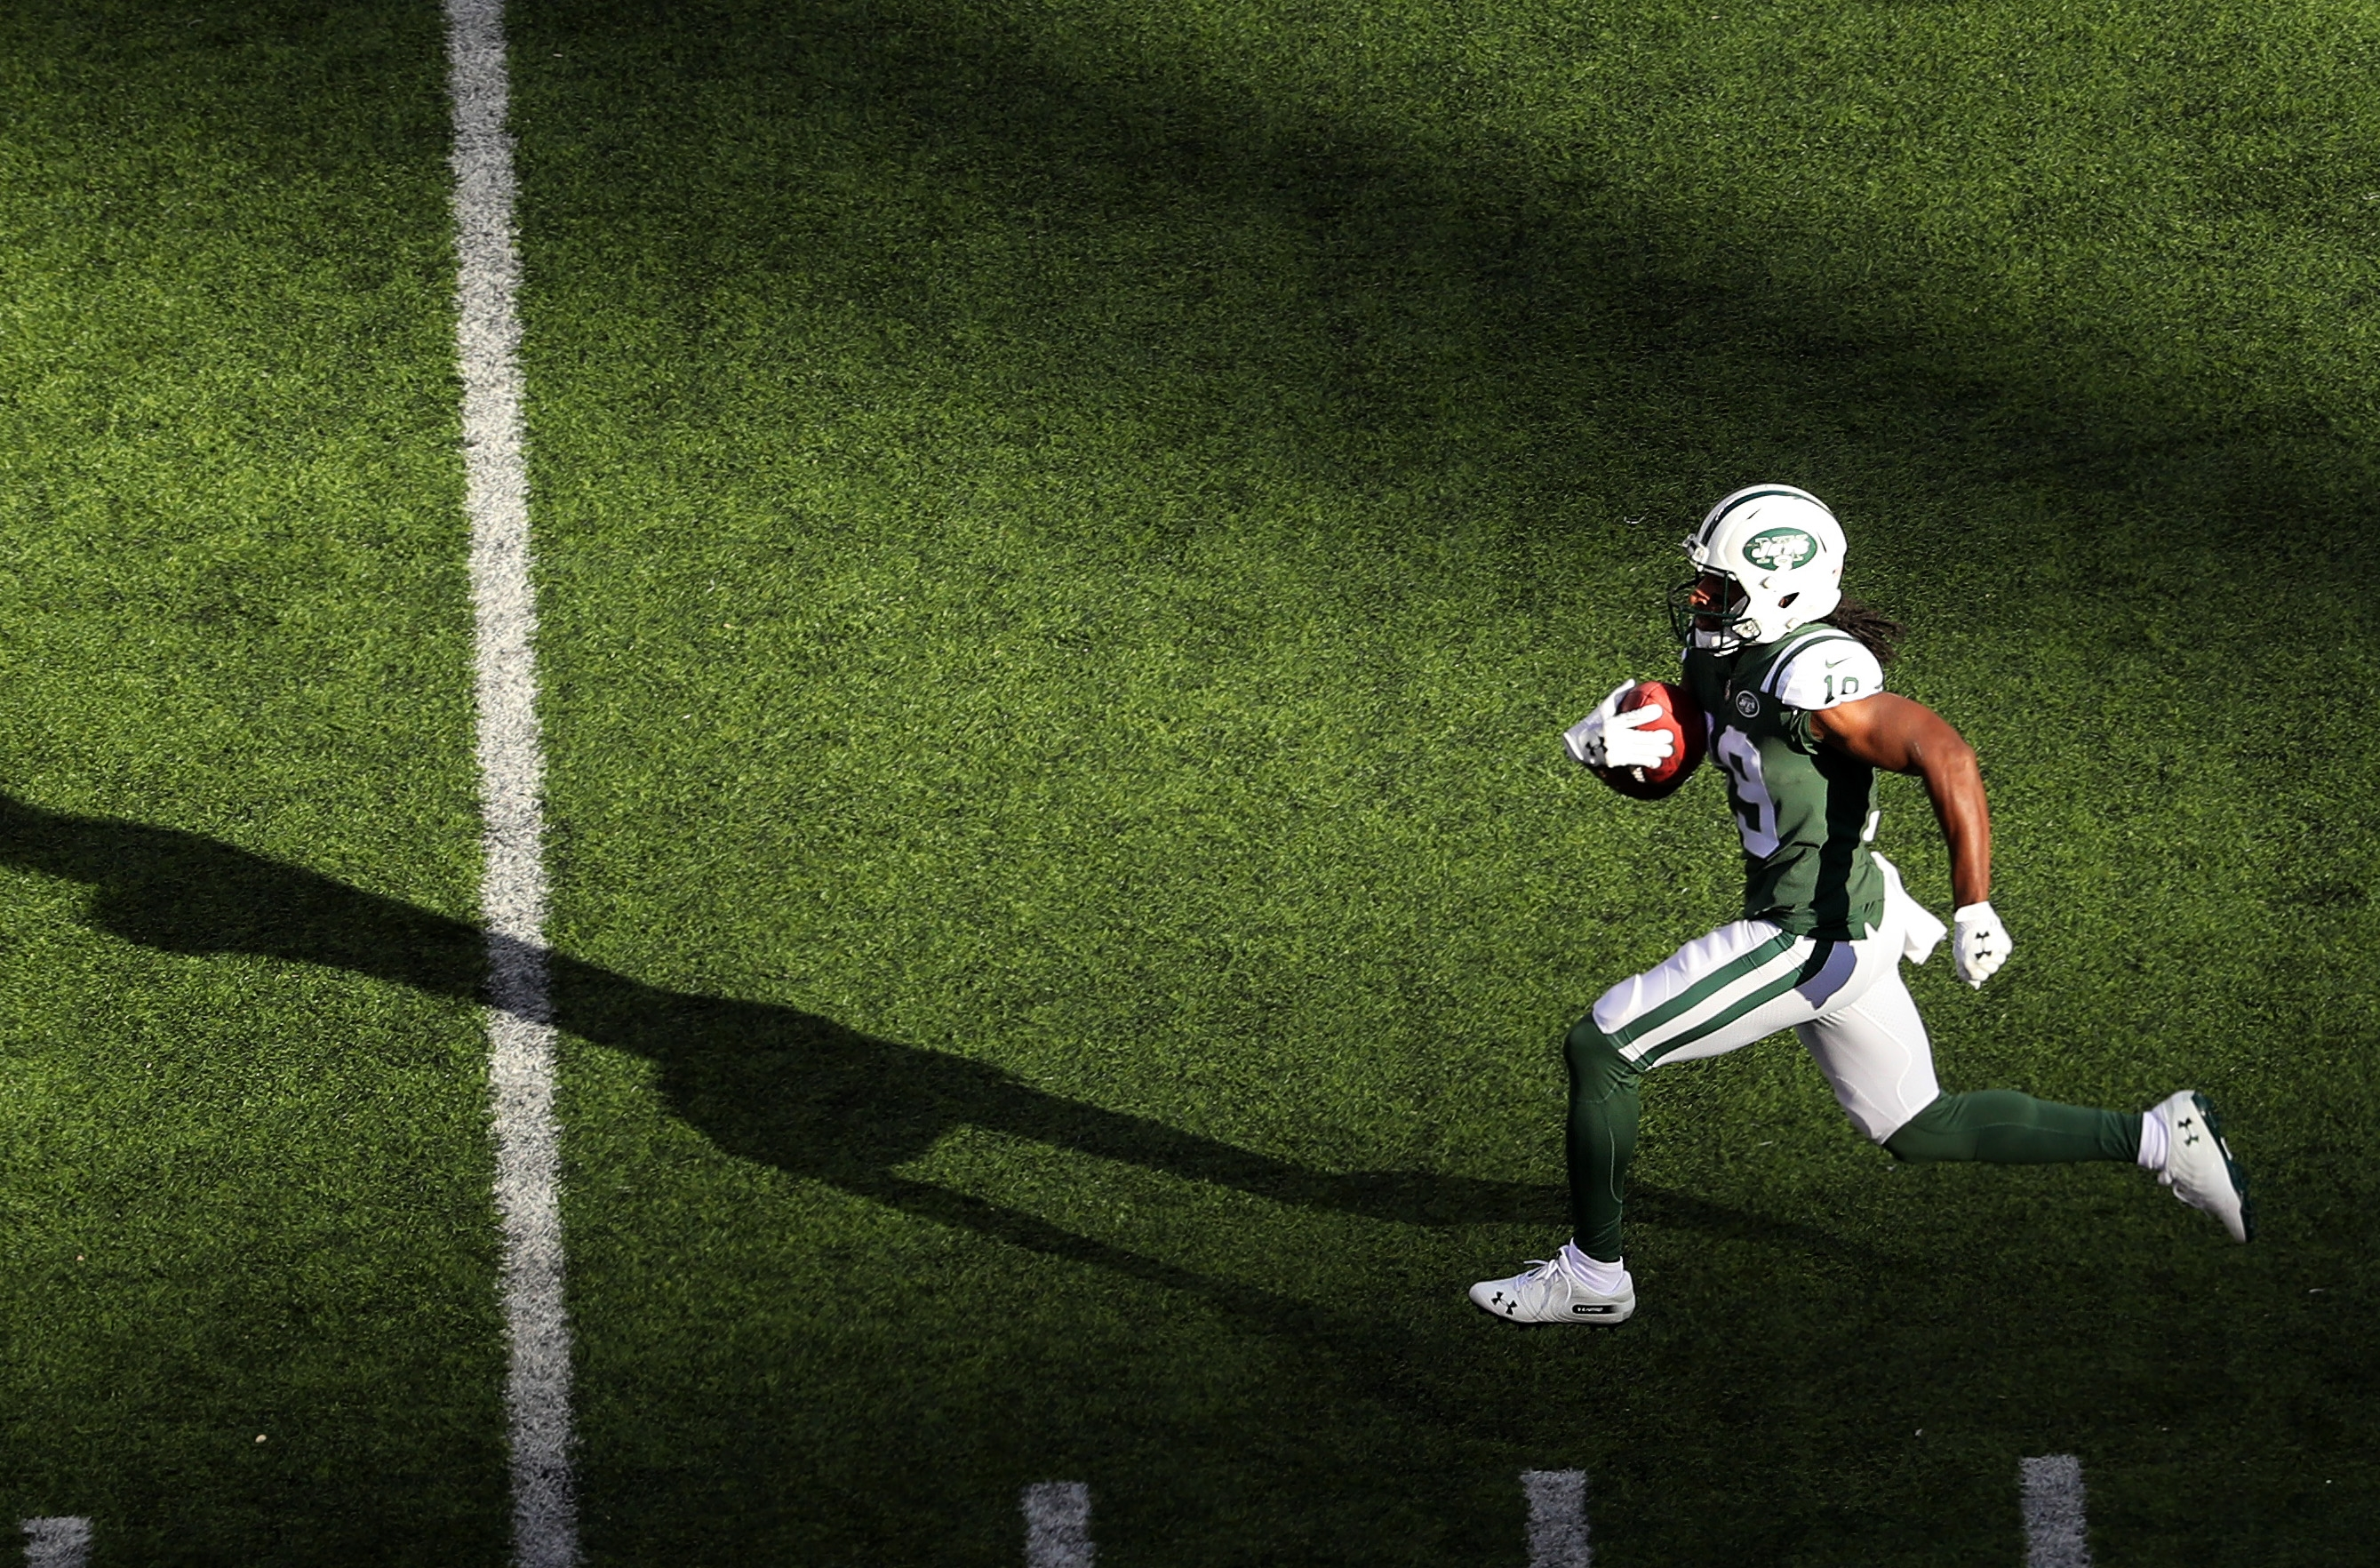 NFL 2019 schedule: Ranking Jets' road trips | How to buy tickets, book accommodations, things to do in those cities